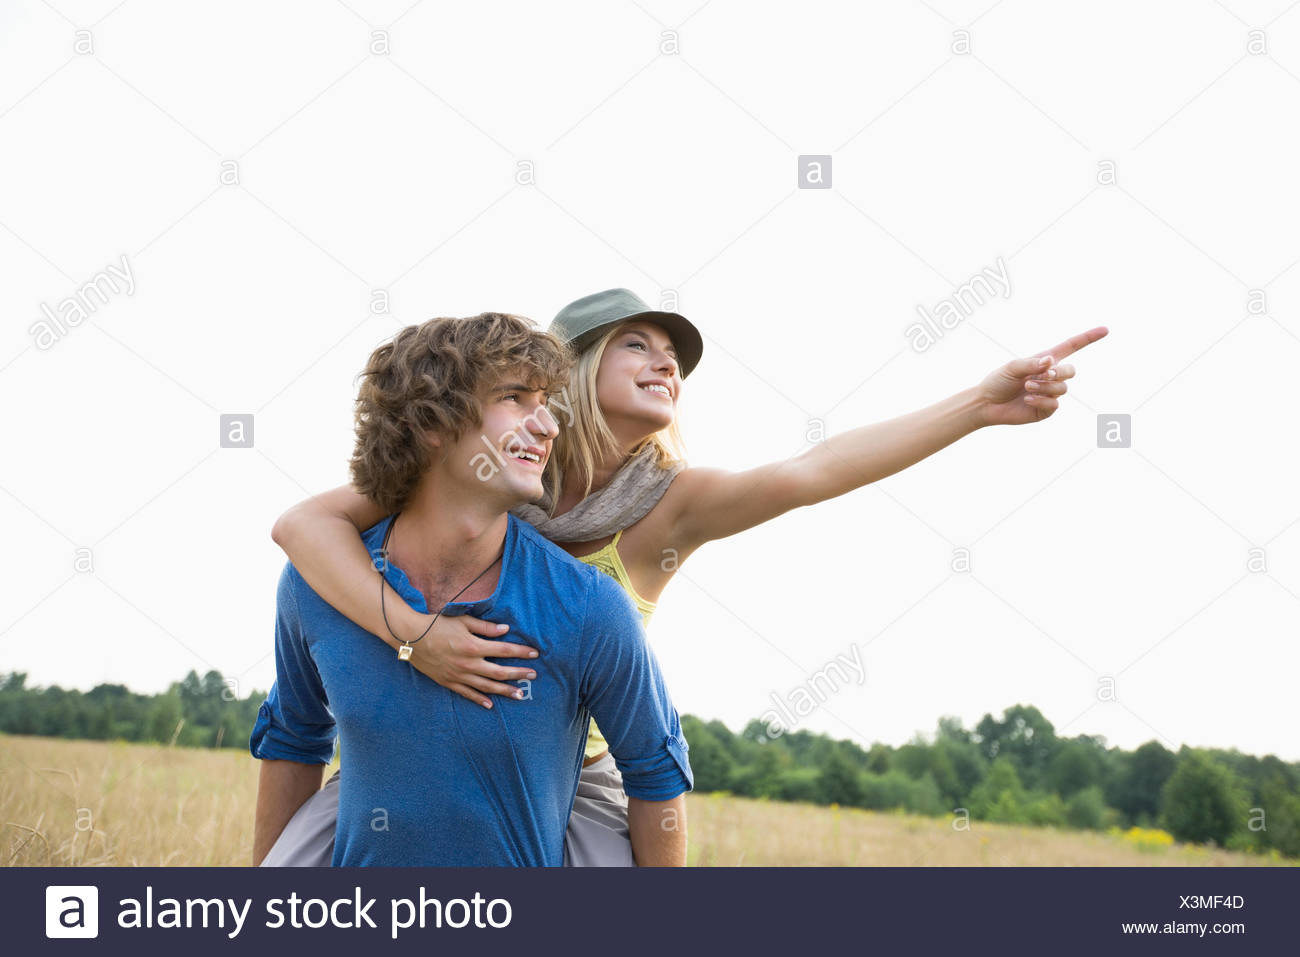 Happy woman showing something while enjoying piggyback ride on man in field Stock Photo